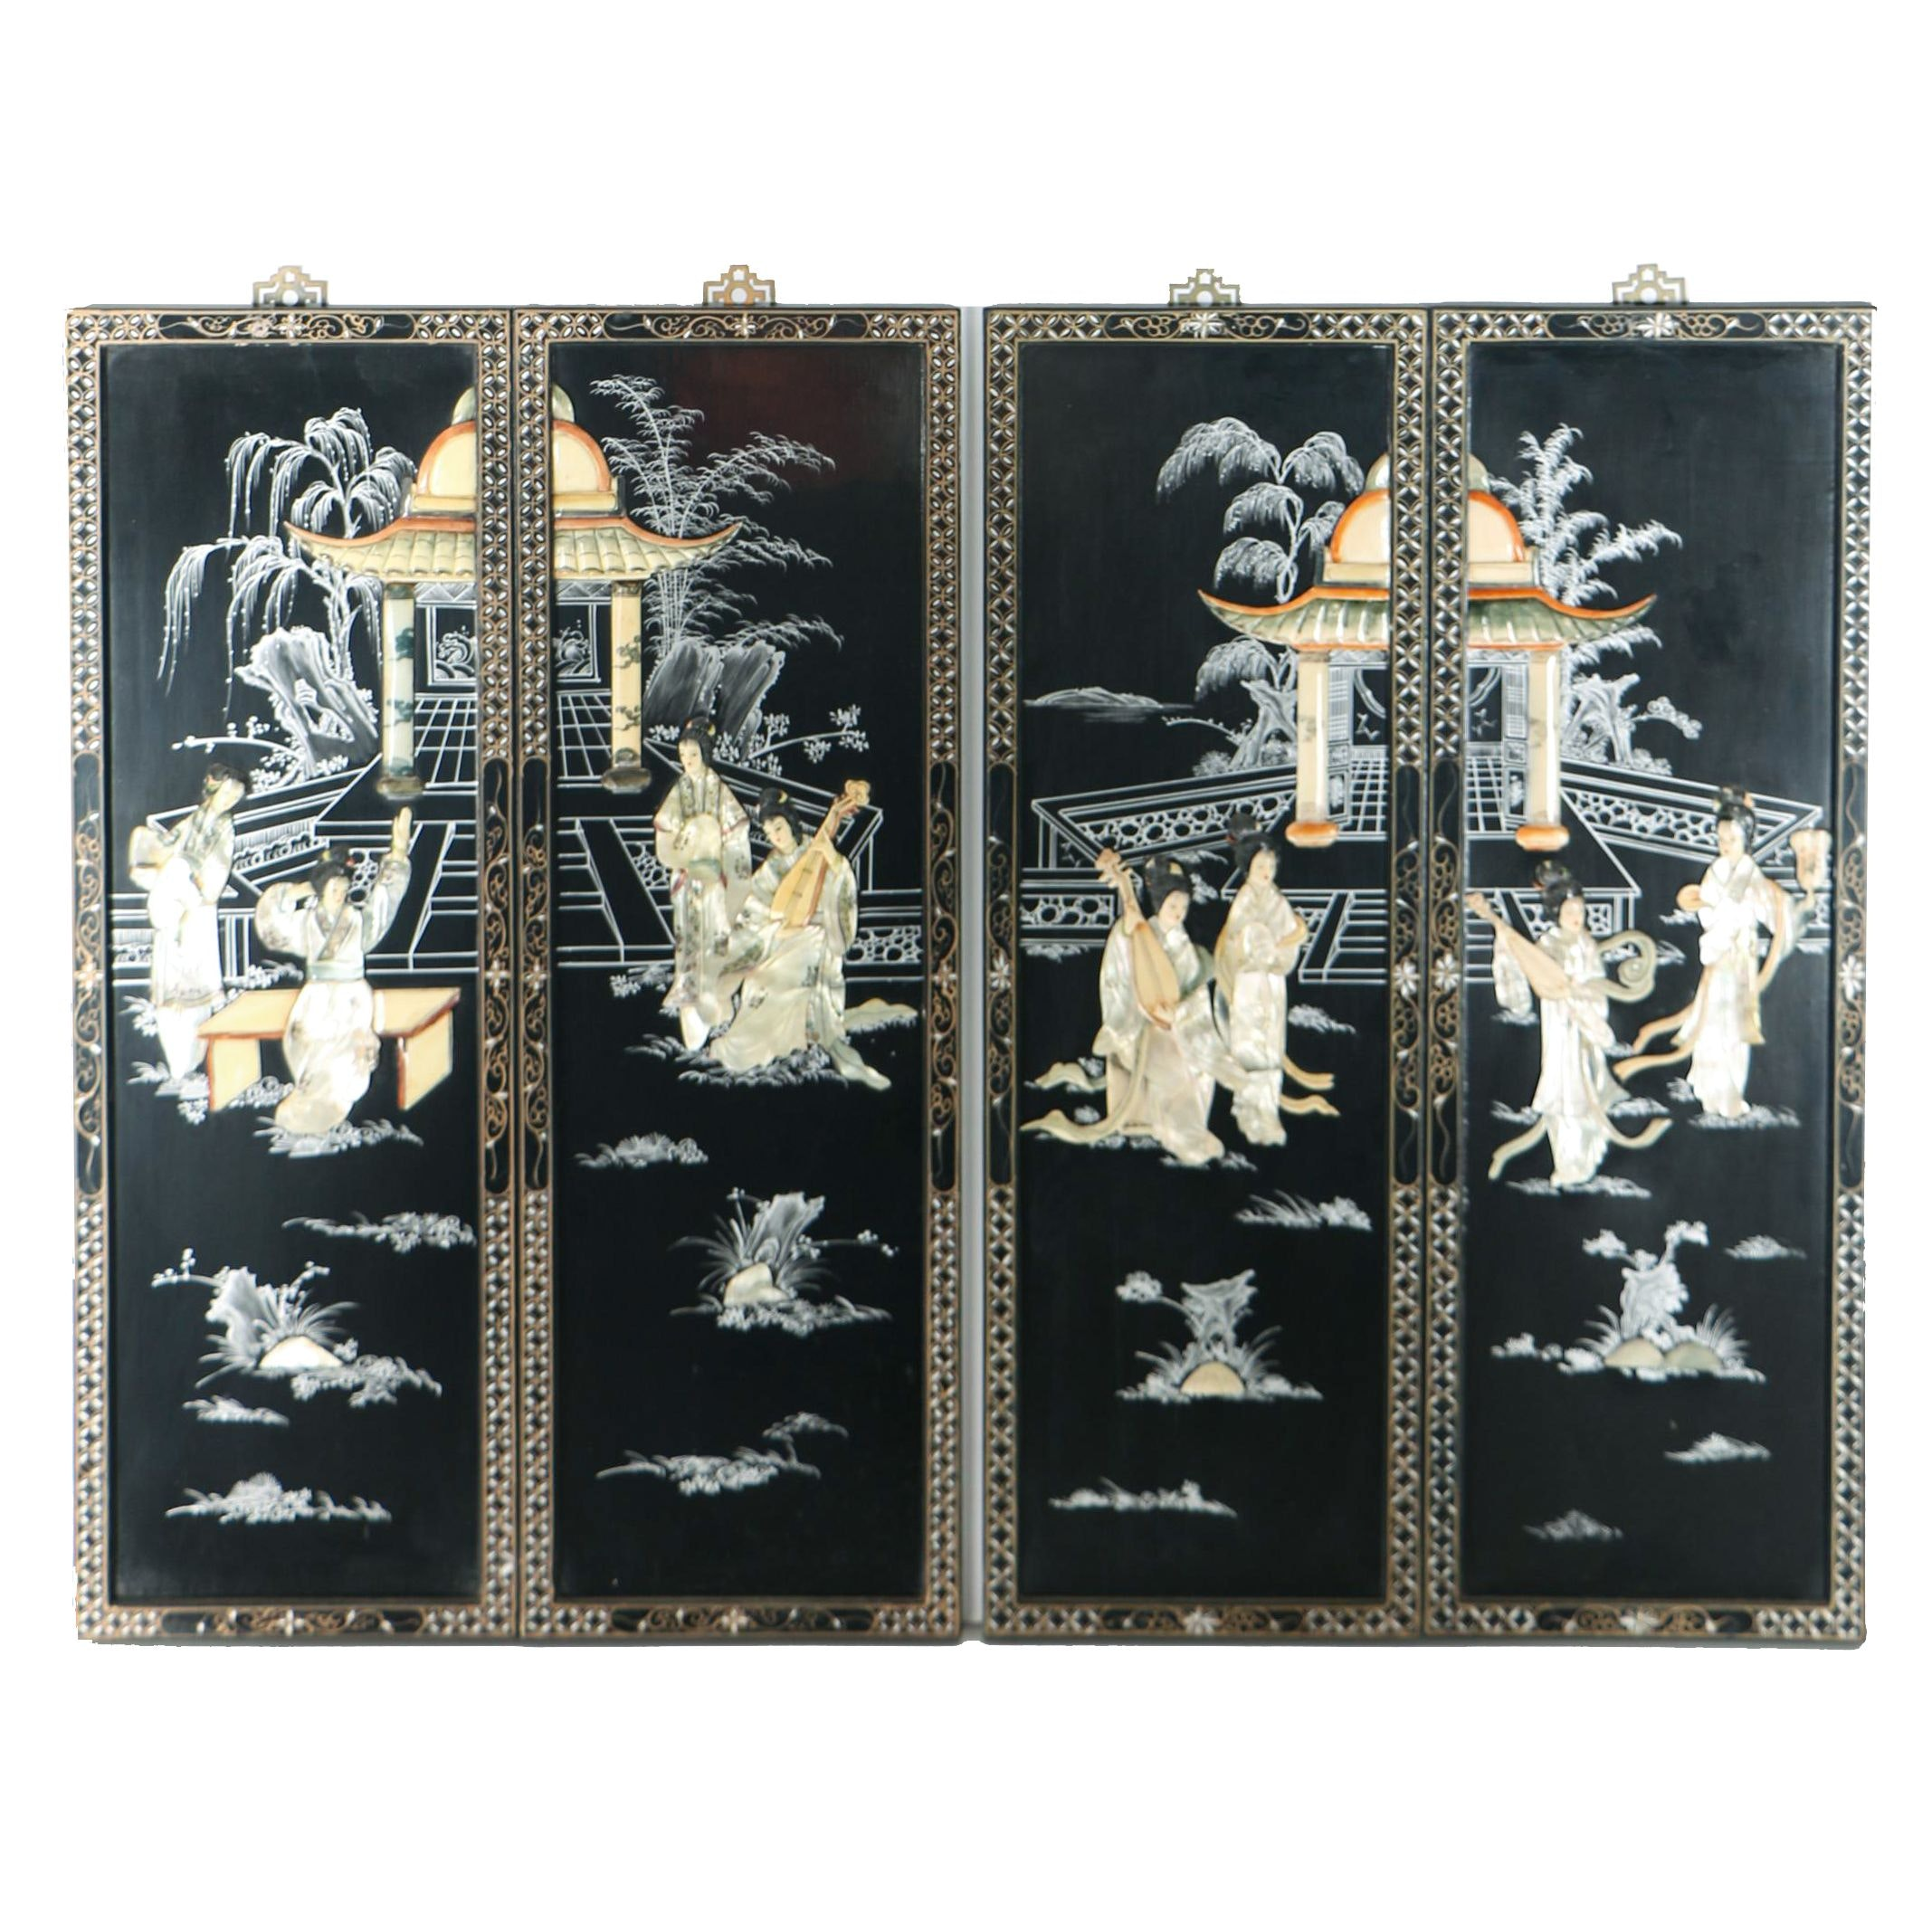 Chinese Decorative Panels with Mother of Pearl and Shell Inlay